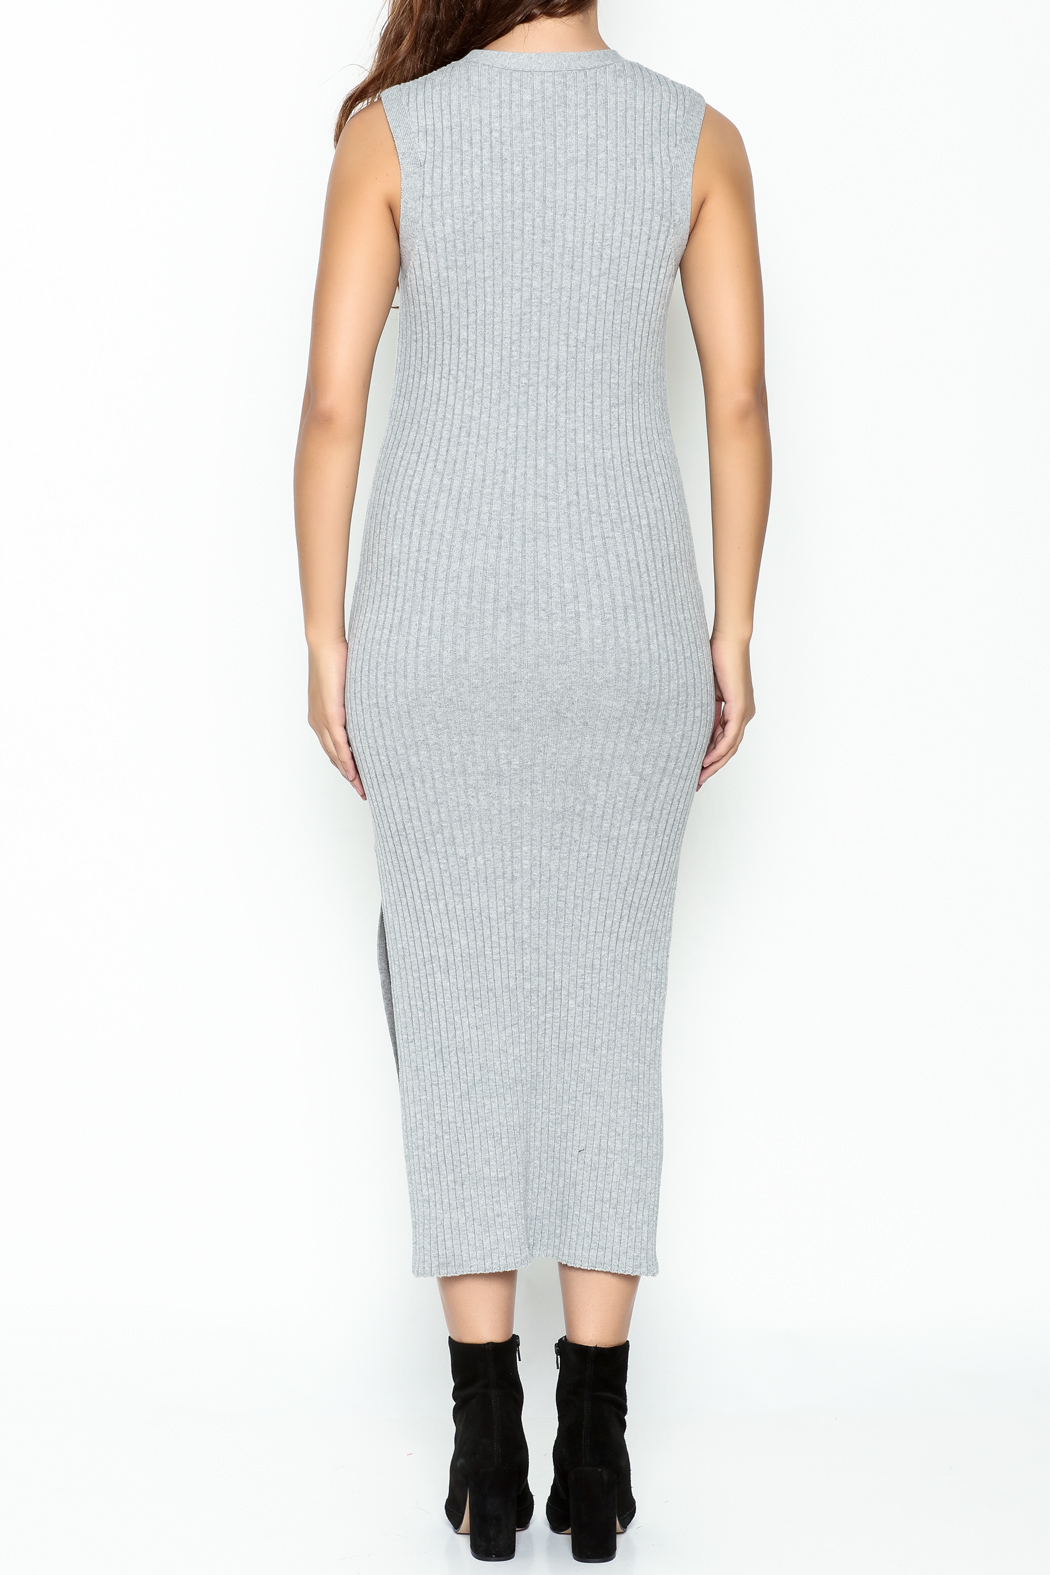 FRAME Denim Grey Ribbed Dress - Back Cropped Image